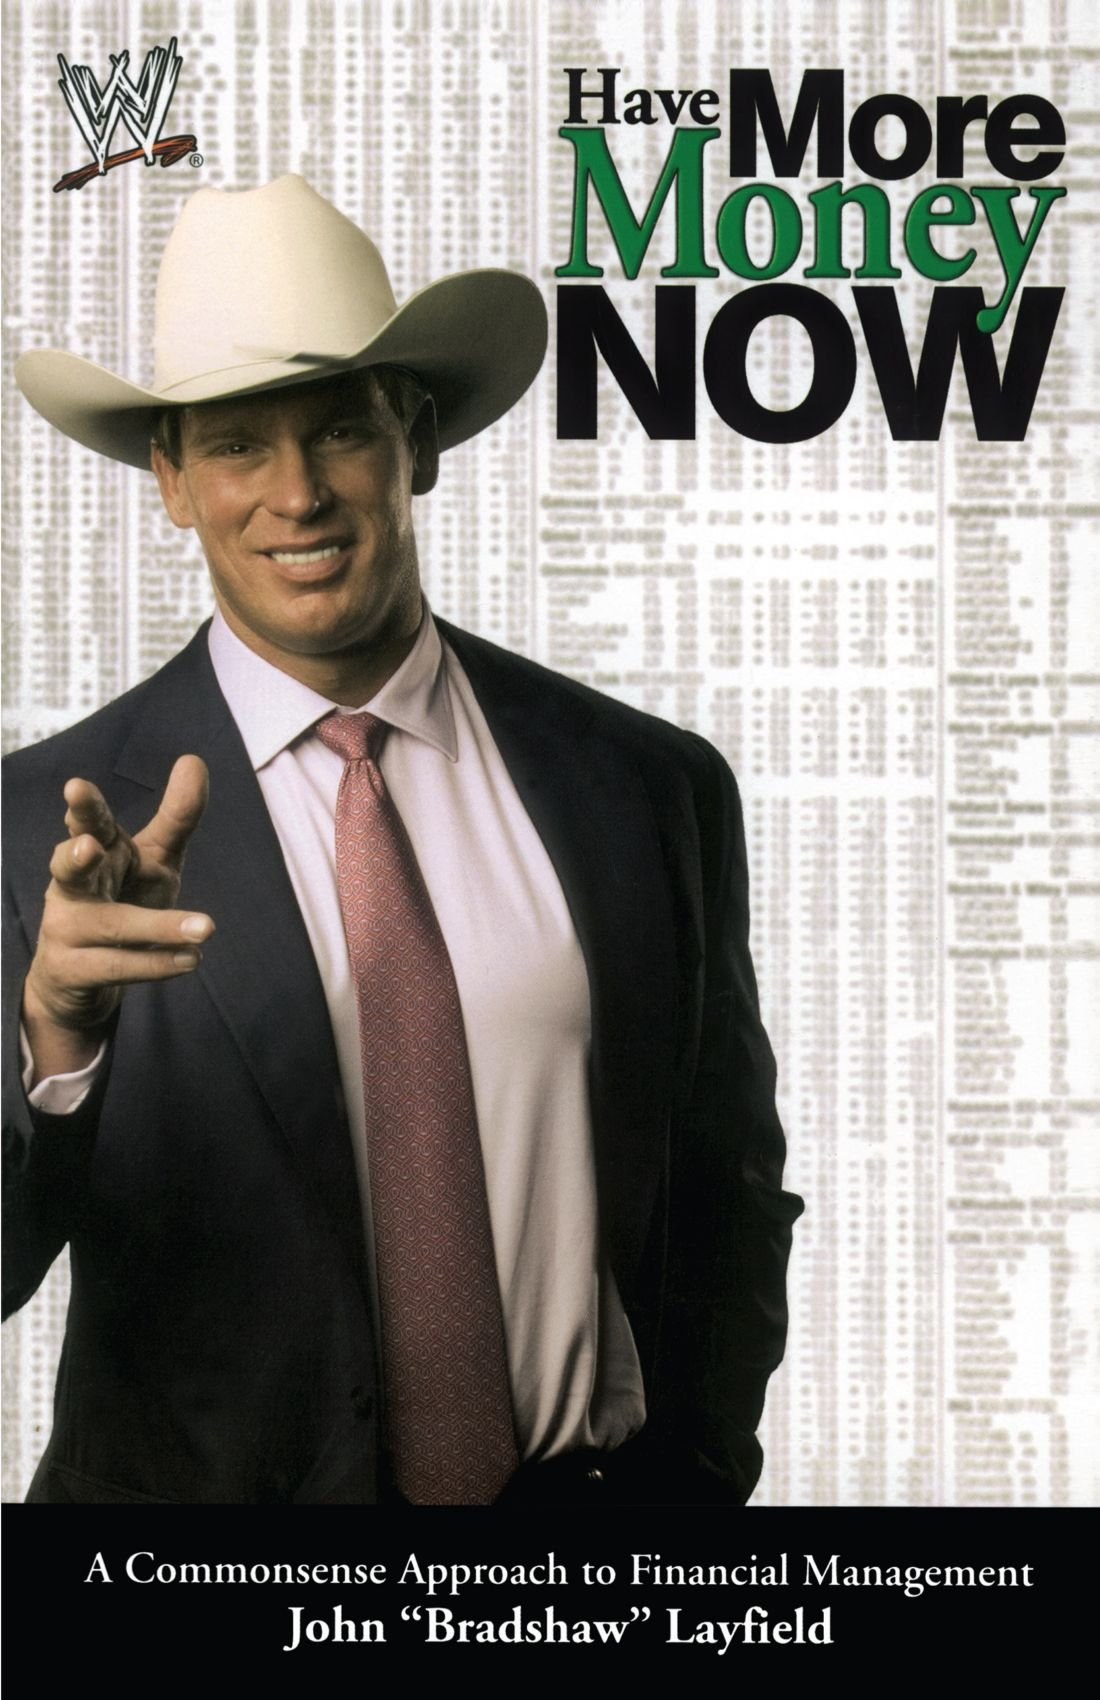 Have More Money Now: A Commonsense Approach to Financial Management (Wwe)